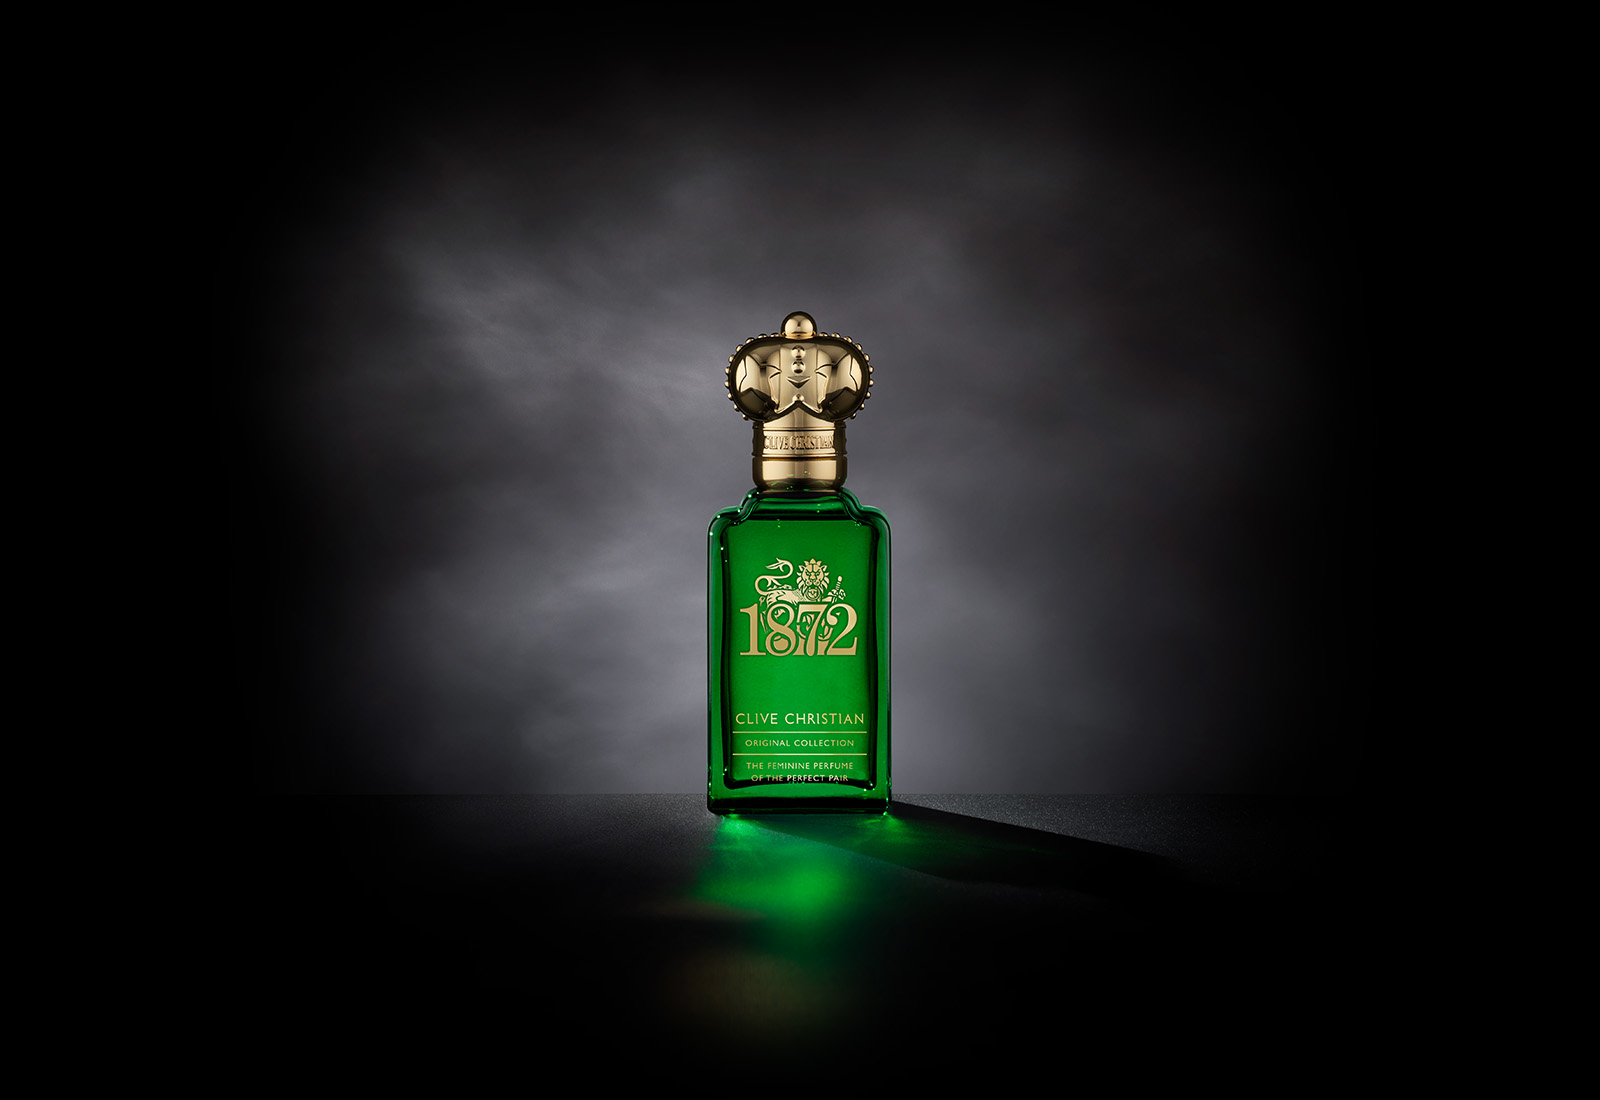 Clive Christian's citrusy floral perfume, 1872 Feminine Edition comes in a green bottle with a gold cap